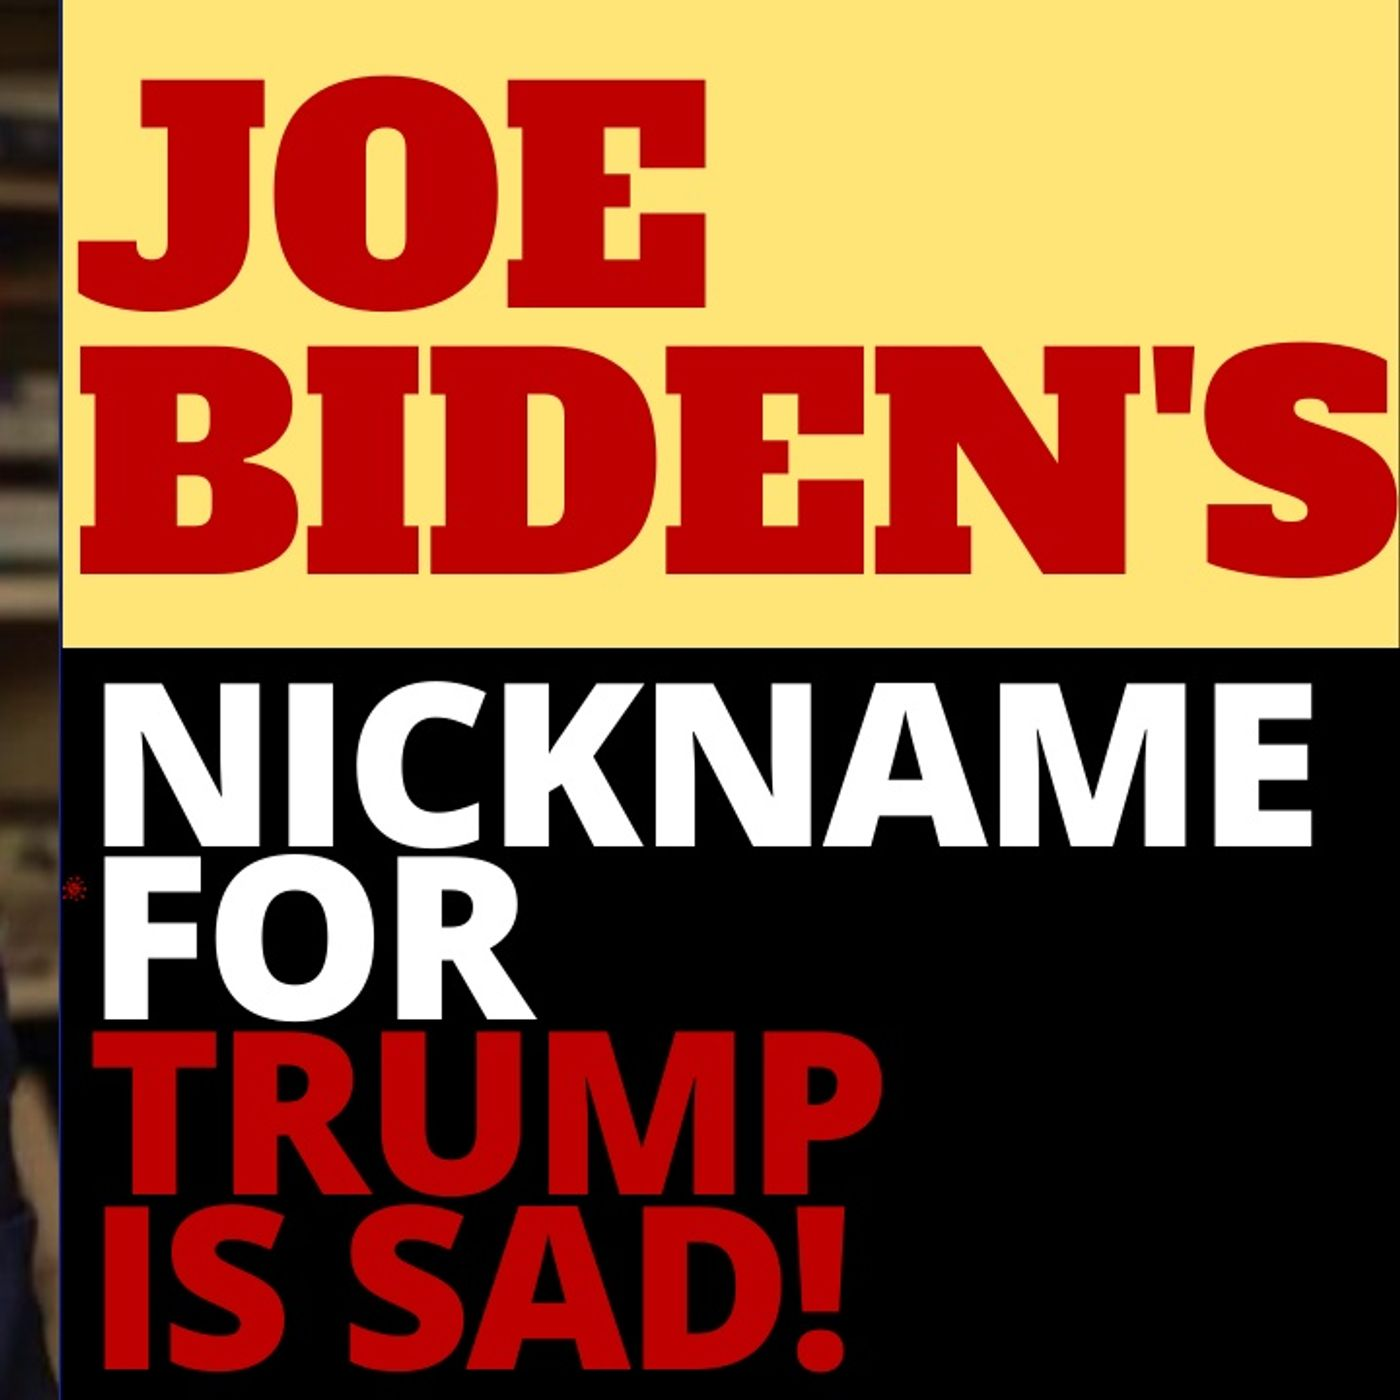 BIDEN HAS A NICKNAME FOR TRUMP AND ITS CRINGE